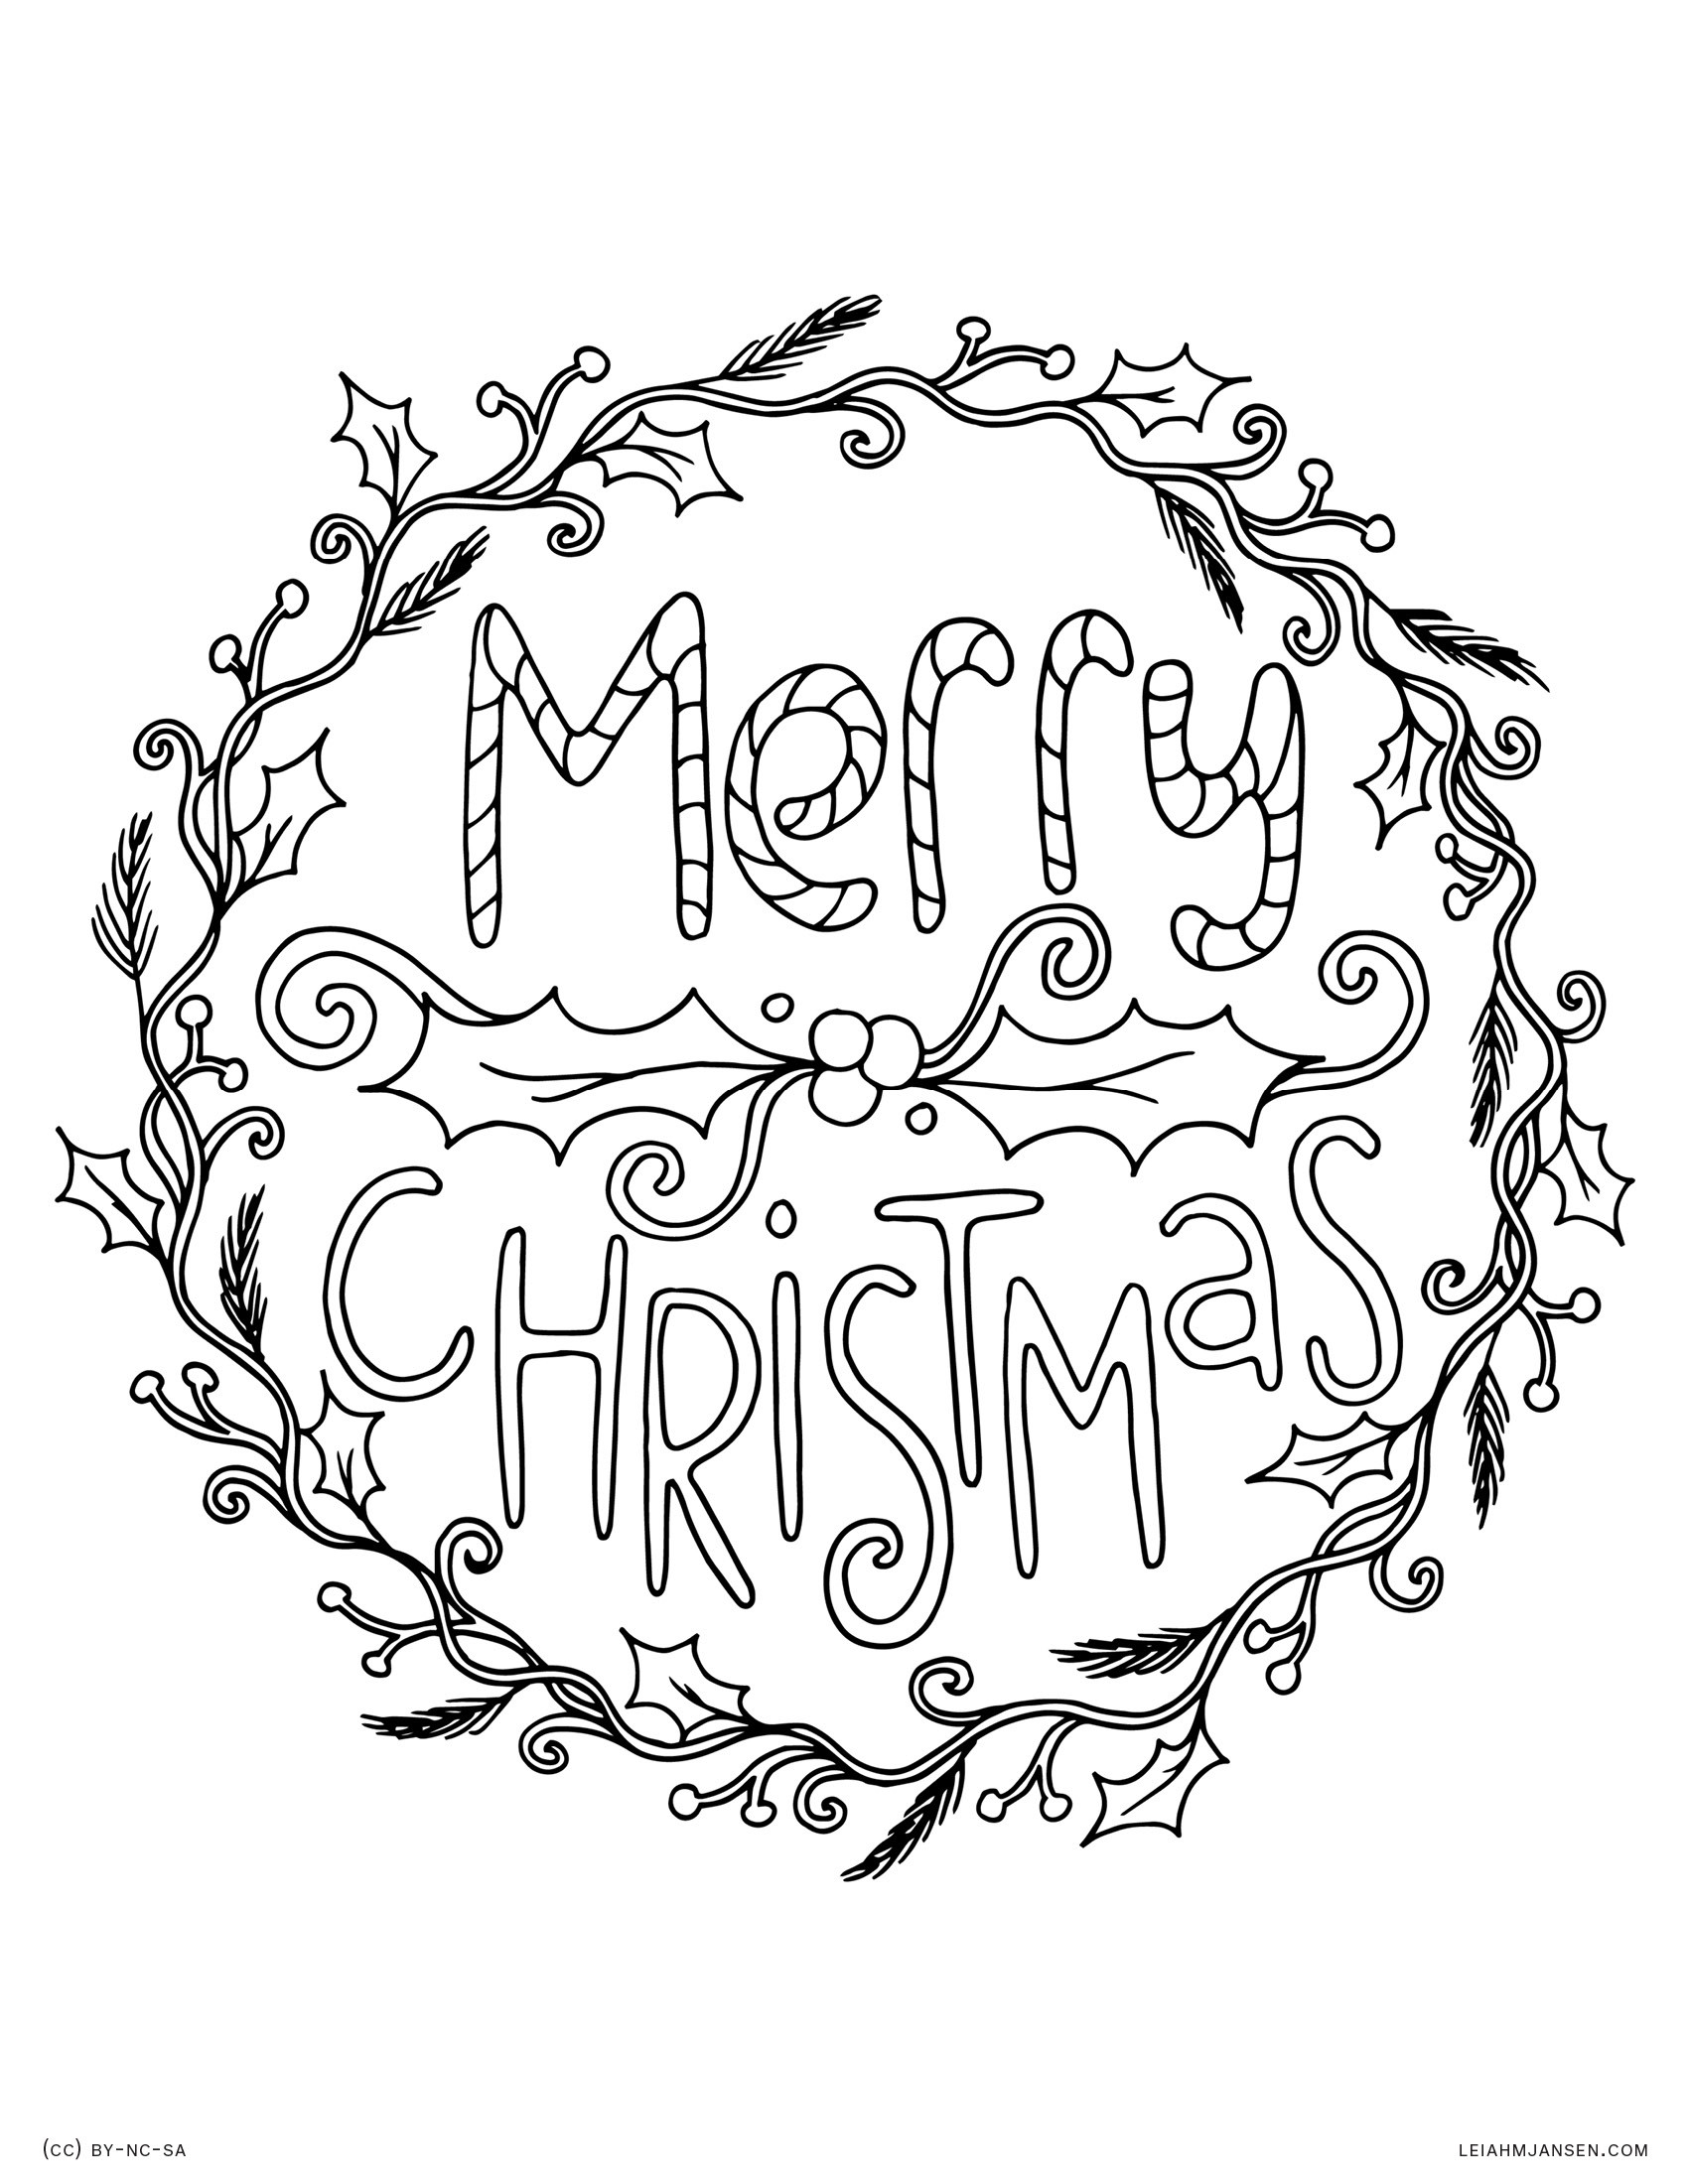 free coloring pages com christmas christmas ornament coloring pages printable simple for pages com free coloring christmas